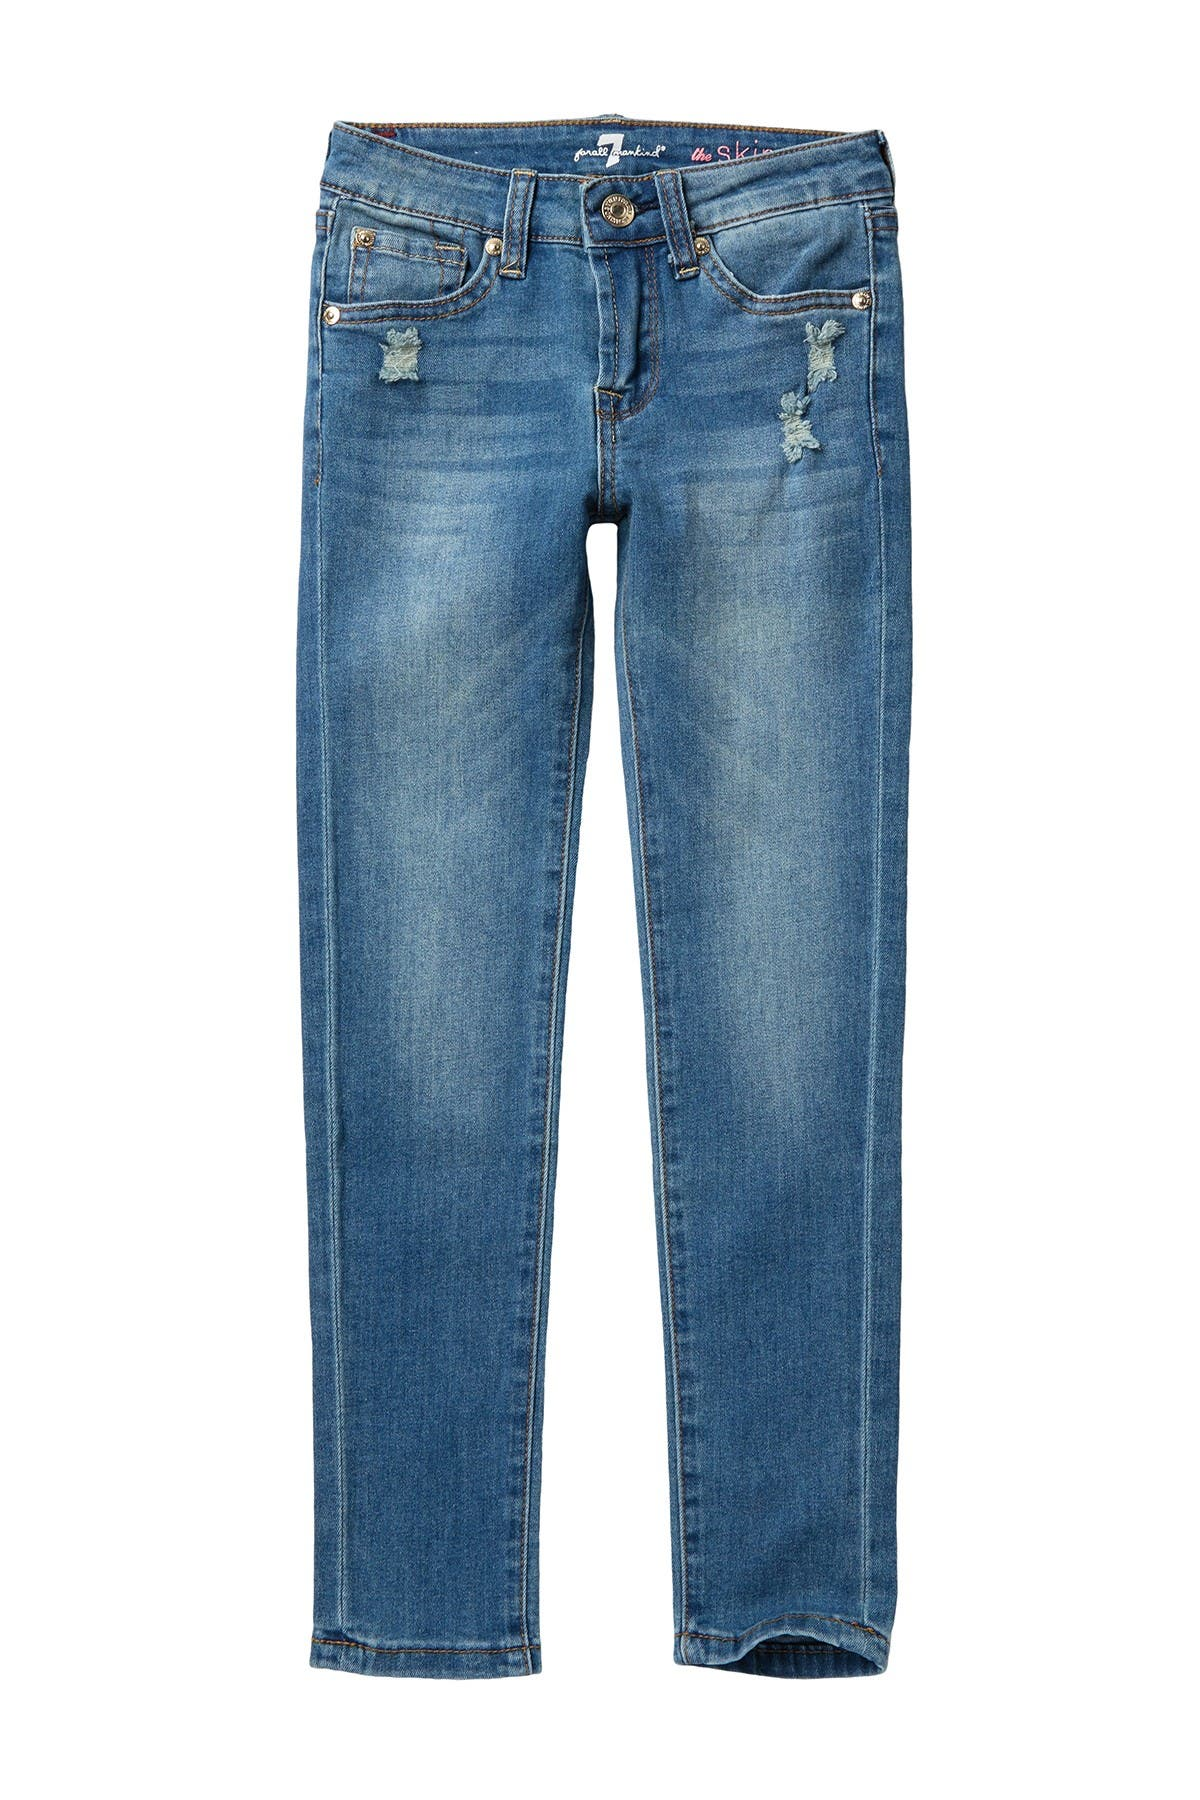 Image of 7 For All Mankind The Skinny Stretch Denim Jeans